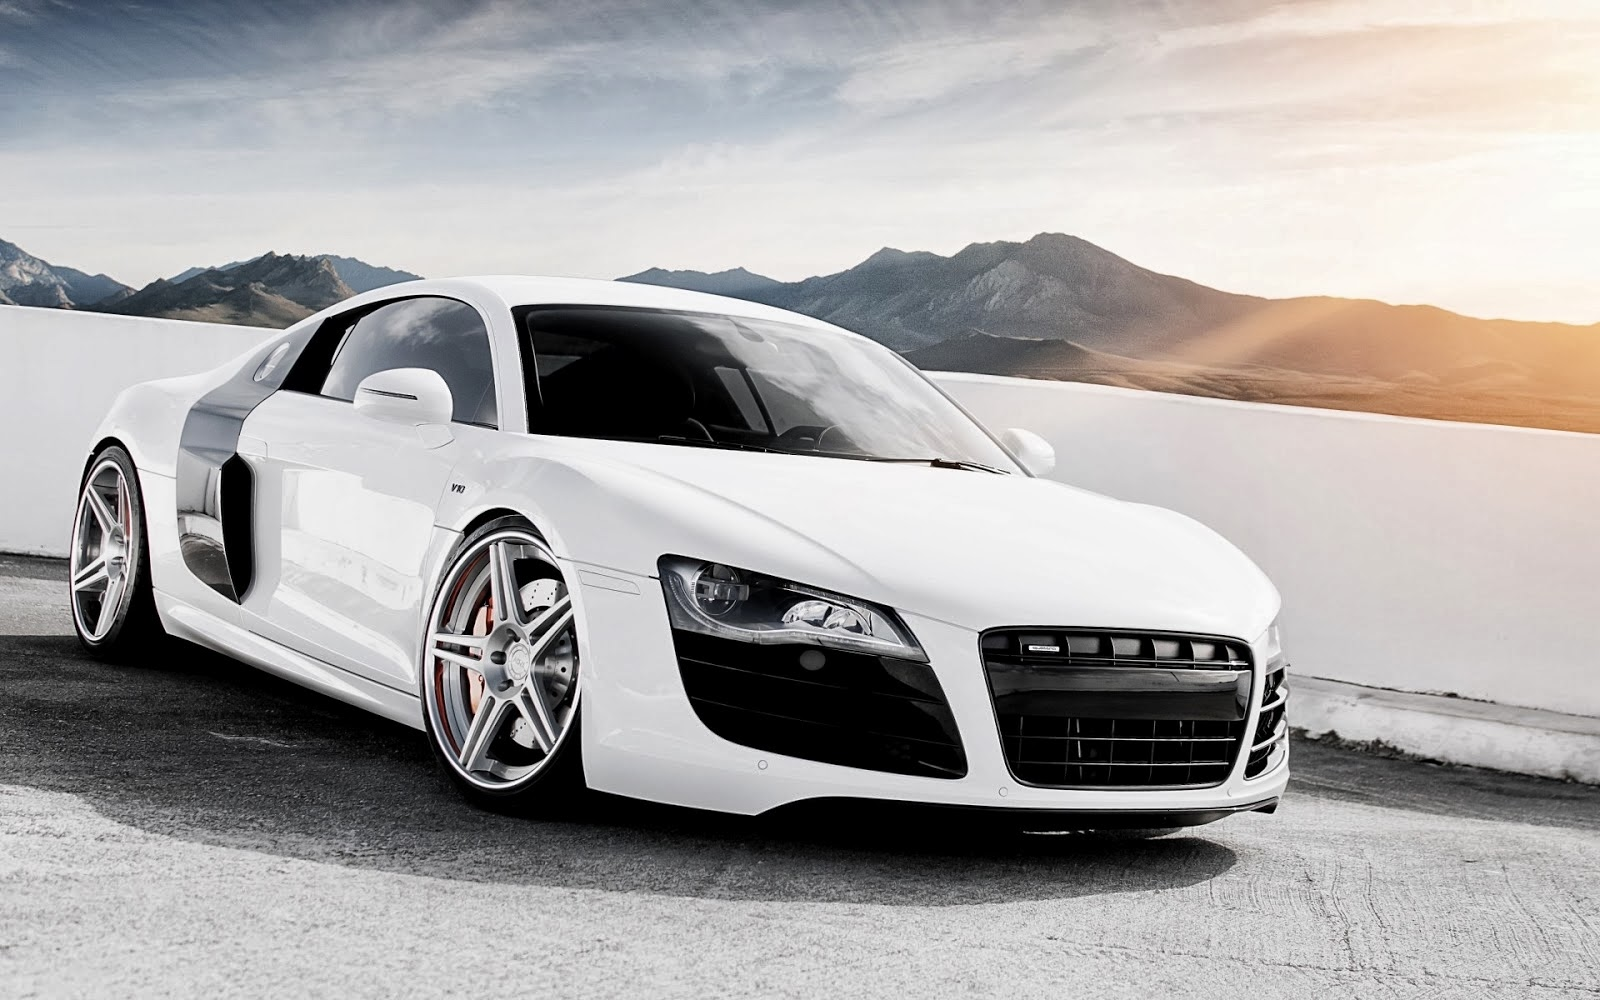 AUDI R8 HD WALLPAPERS | FREE HD WALLPAPERS